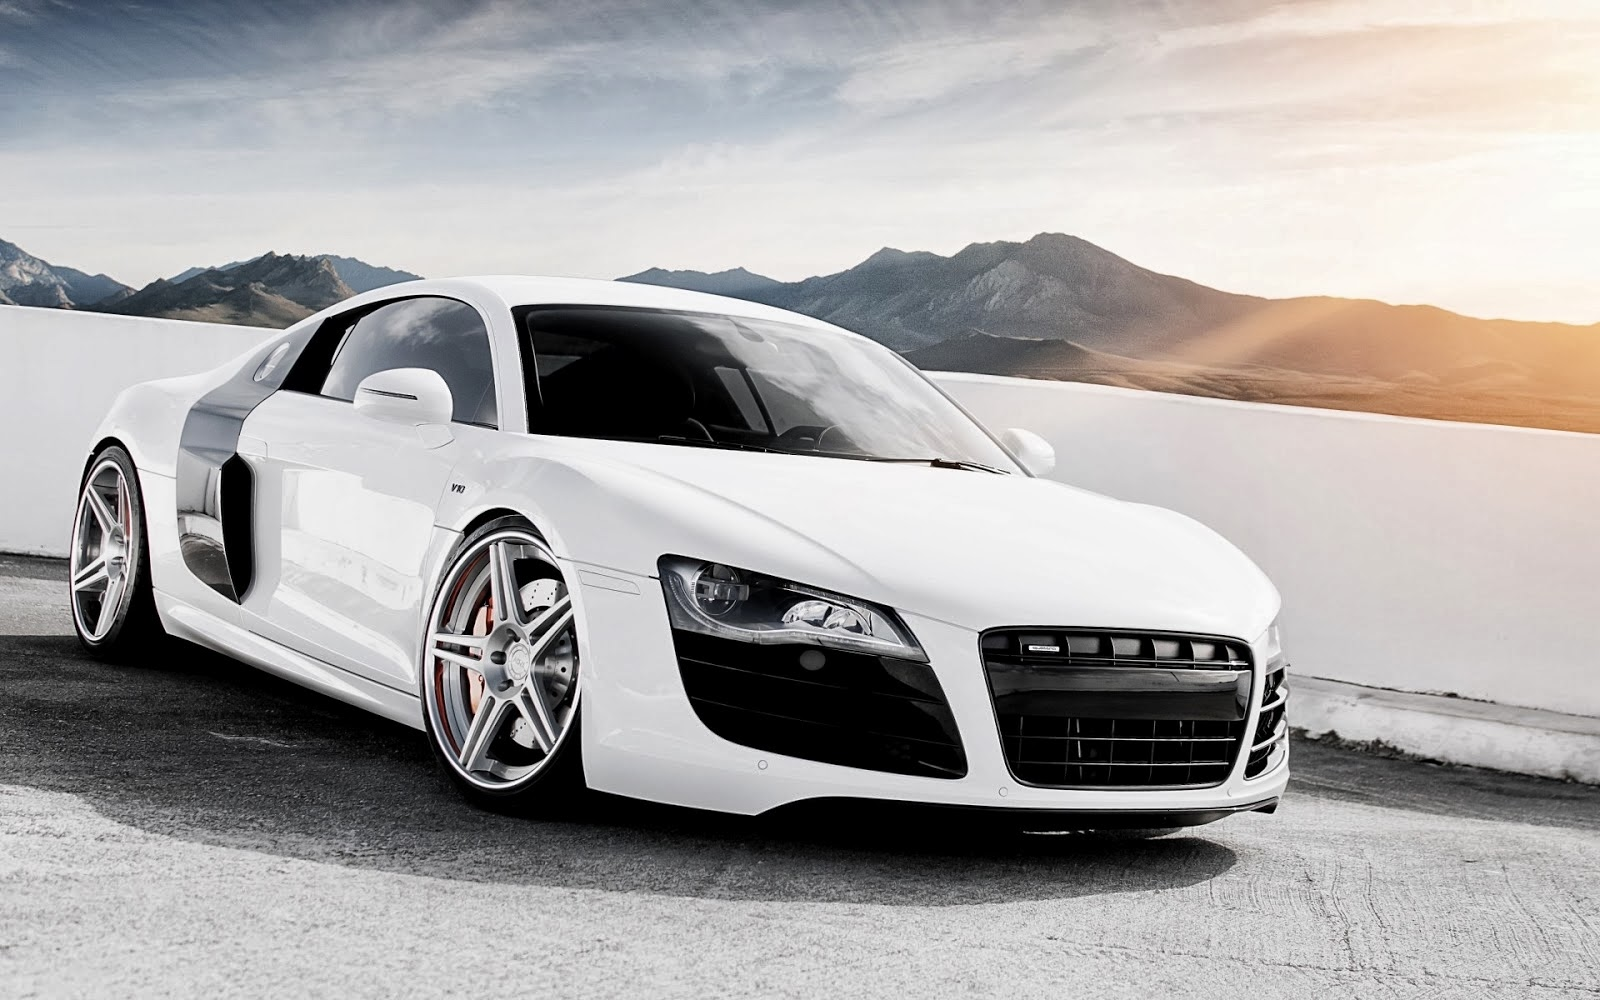 AUDI R8 HD WALLPAPERS | FREE HD WALLPAPERS